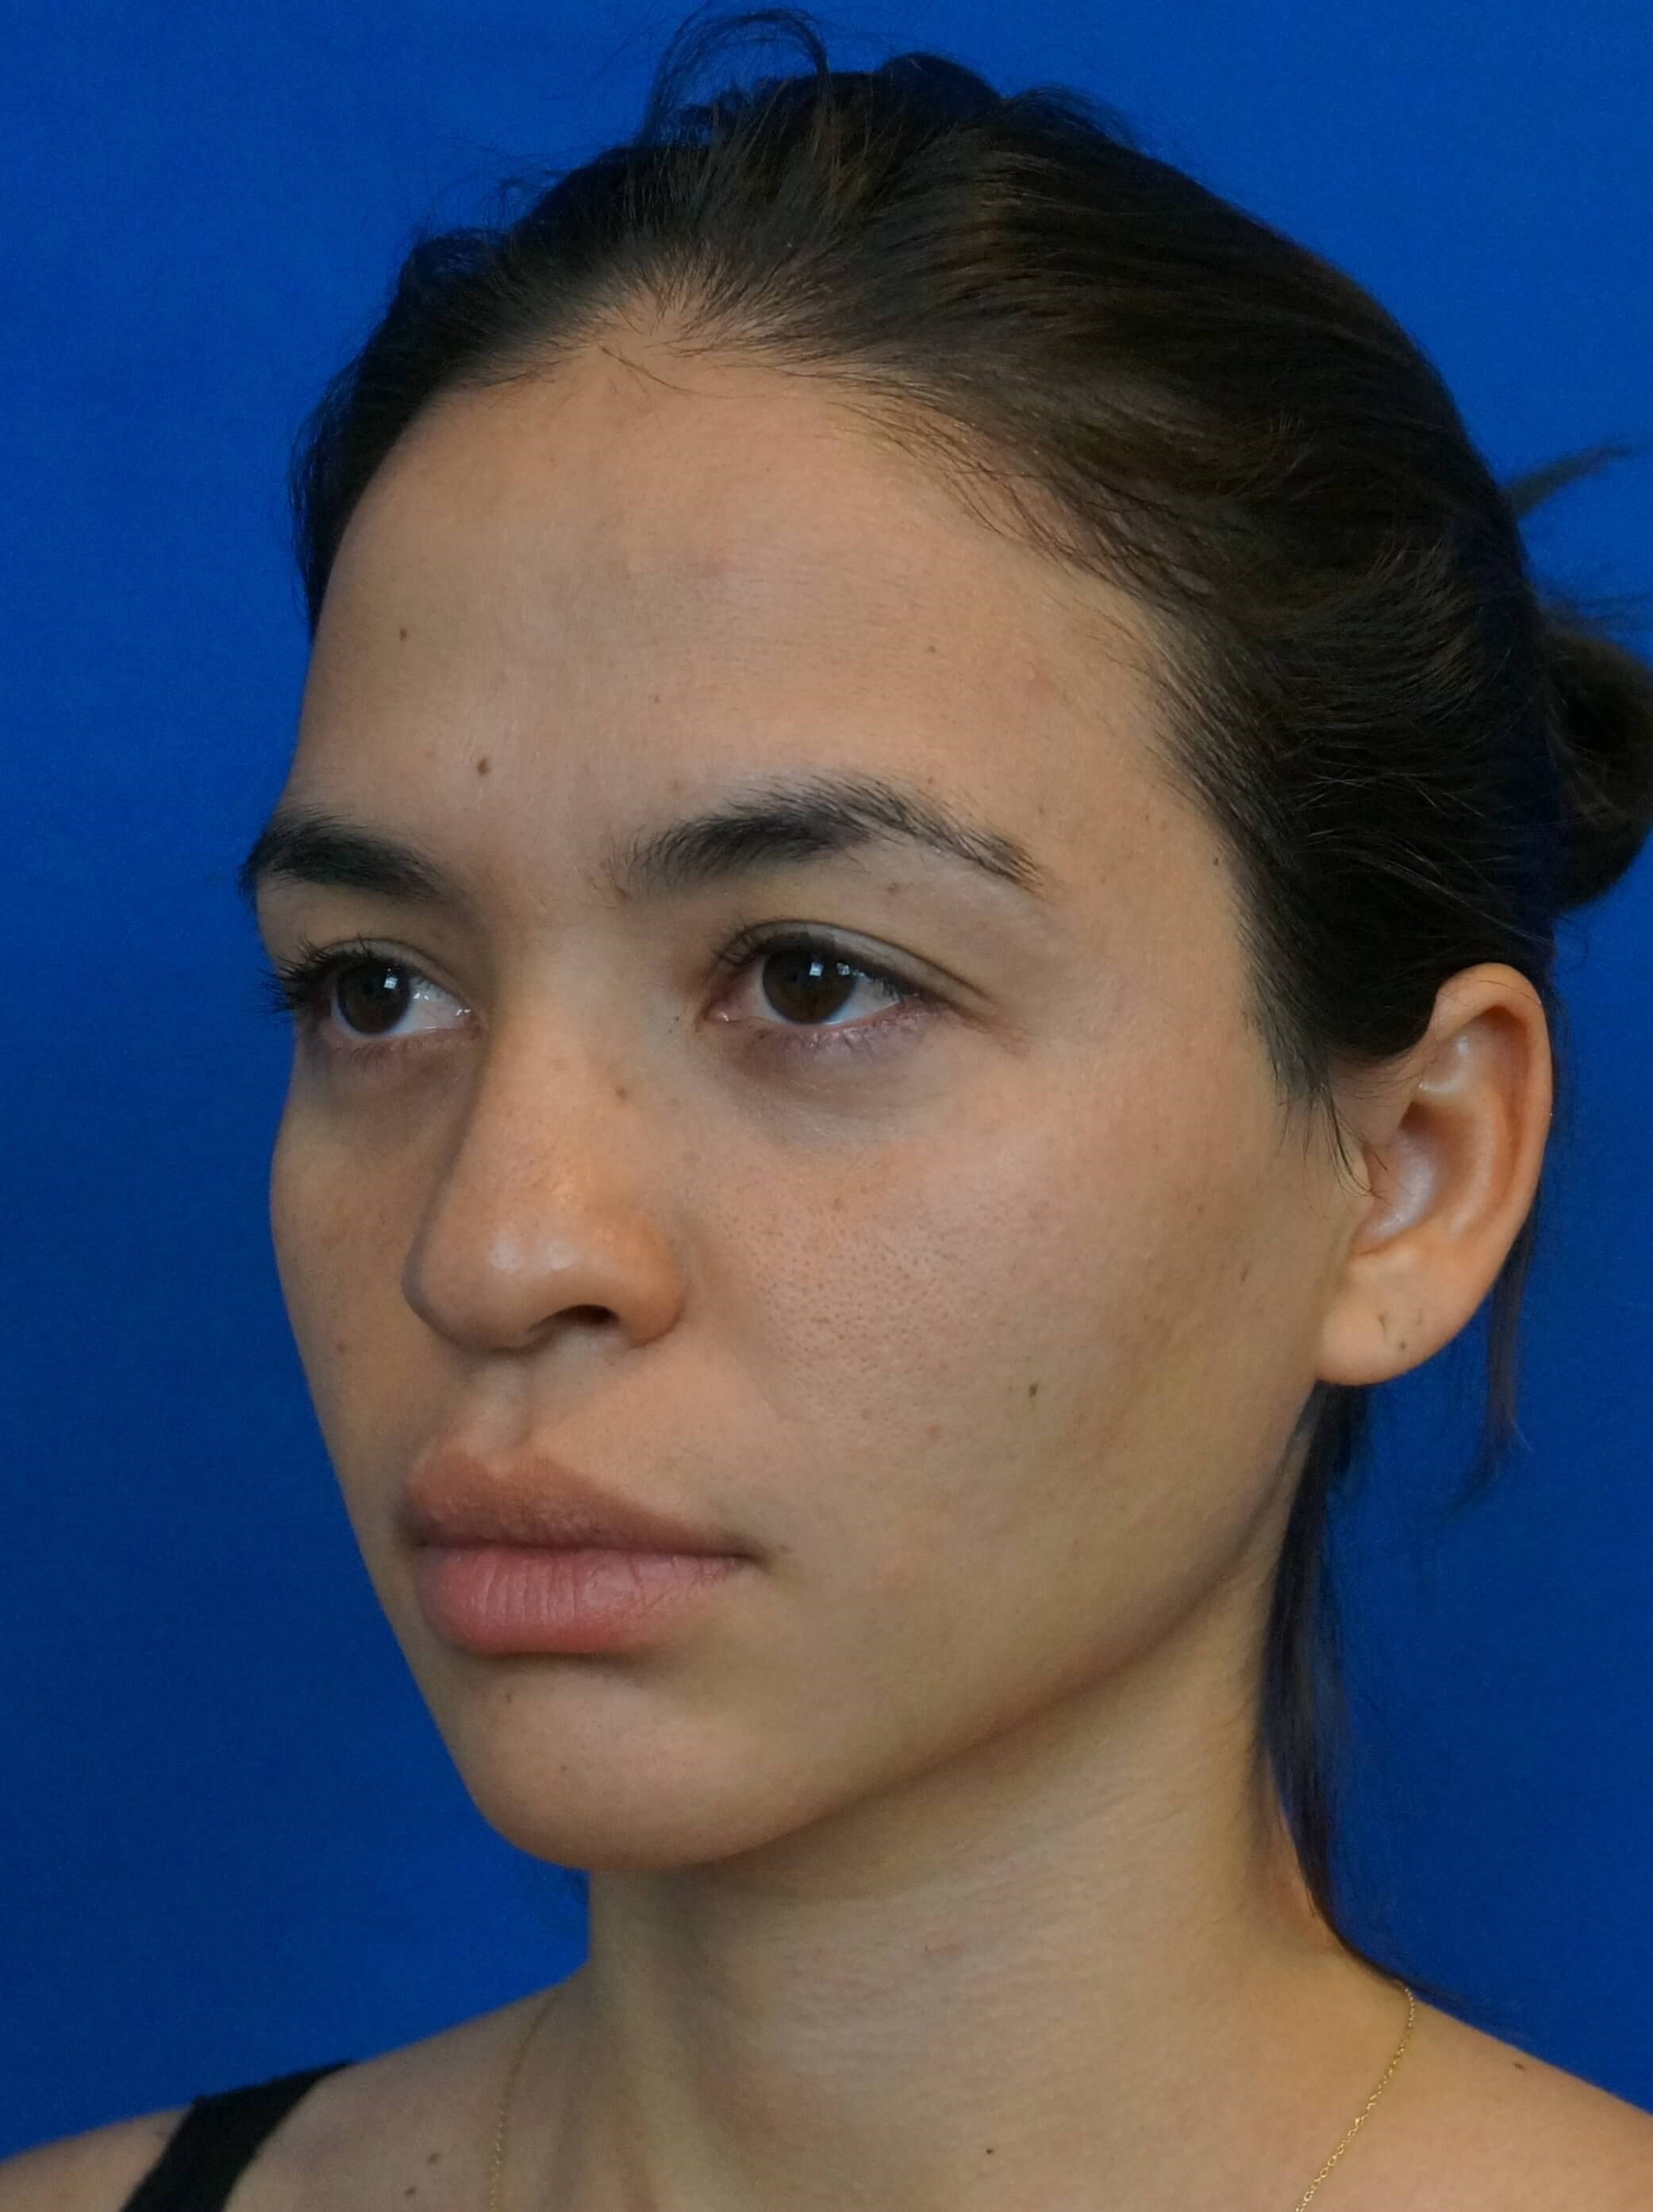 Rhinoplasty Surgeon Las Vegas Rhinoplasty Before Picture